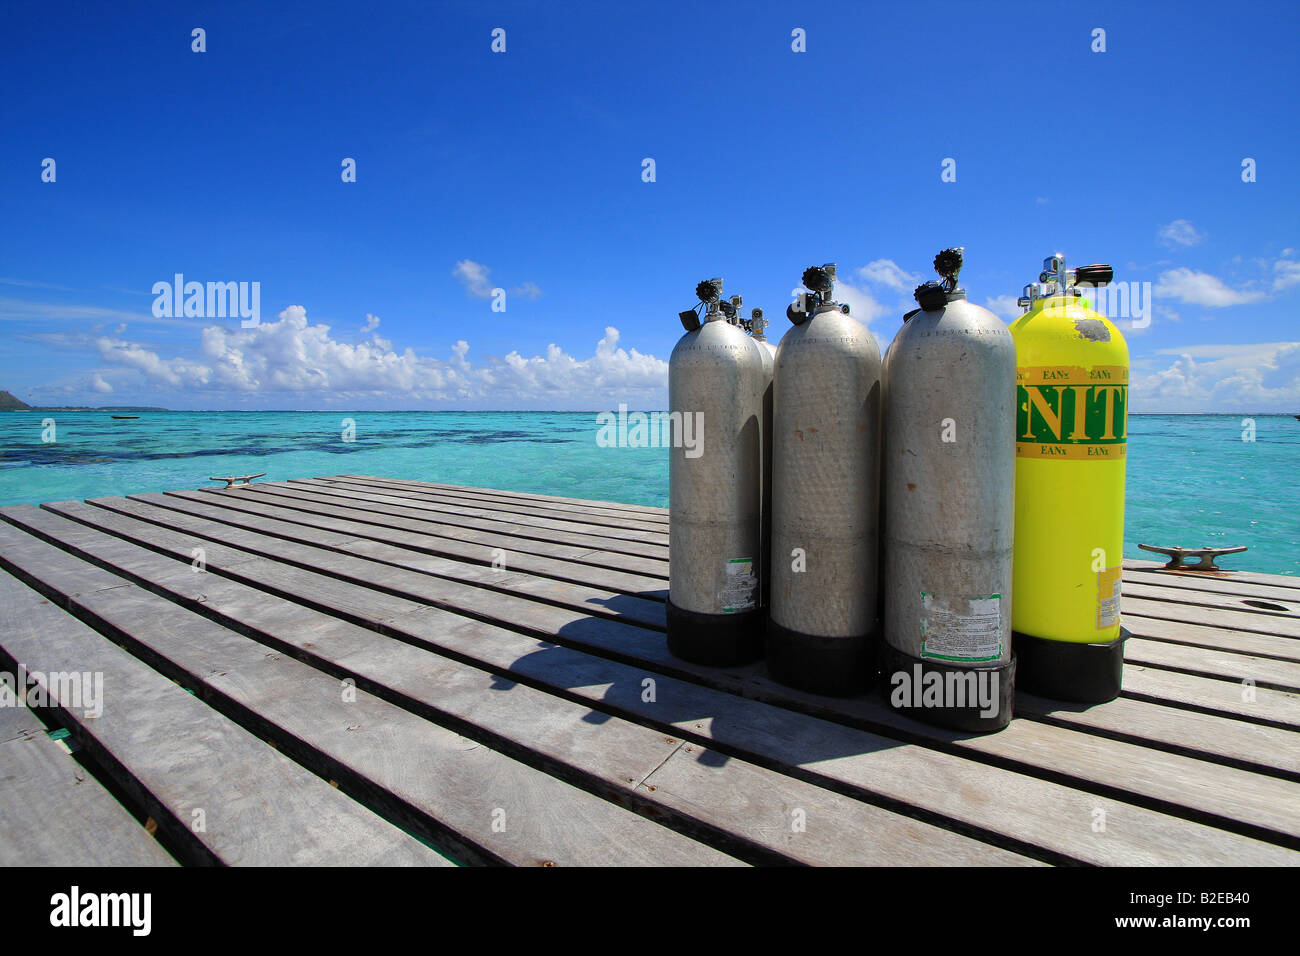 Diving cylinders on jetty, Tuamotu Archipelago, French Polynesia, Polynesia, Pacific Island - Stock Image